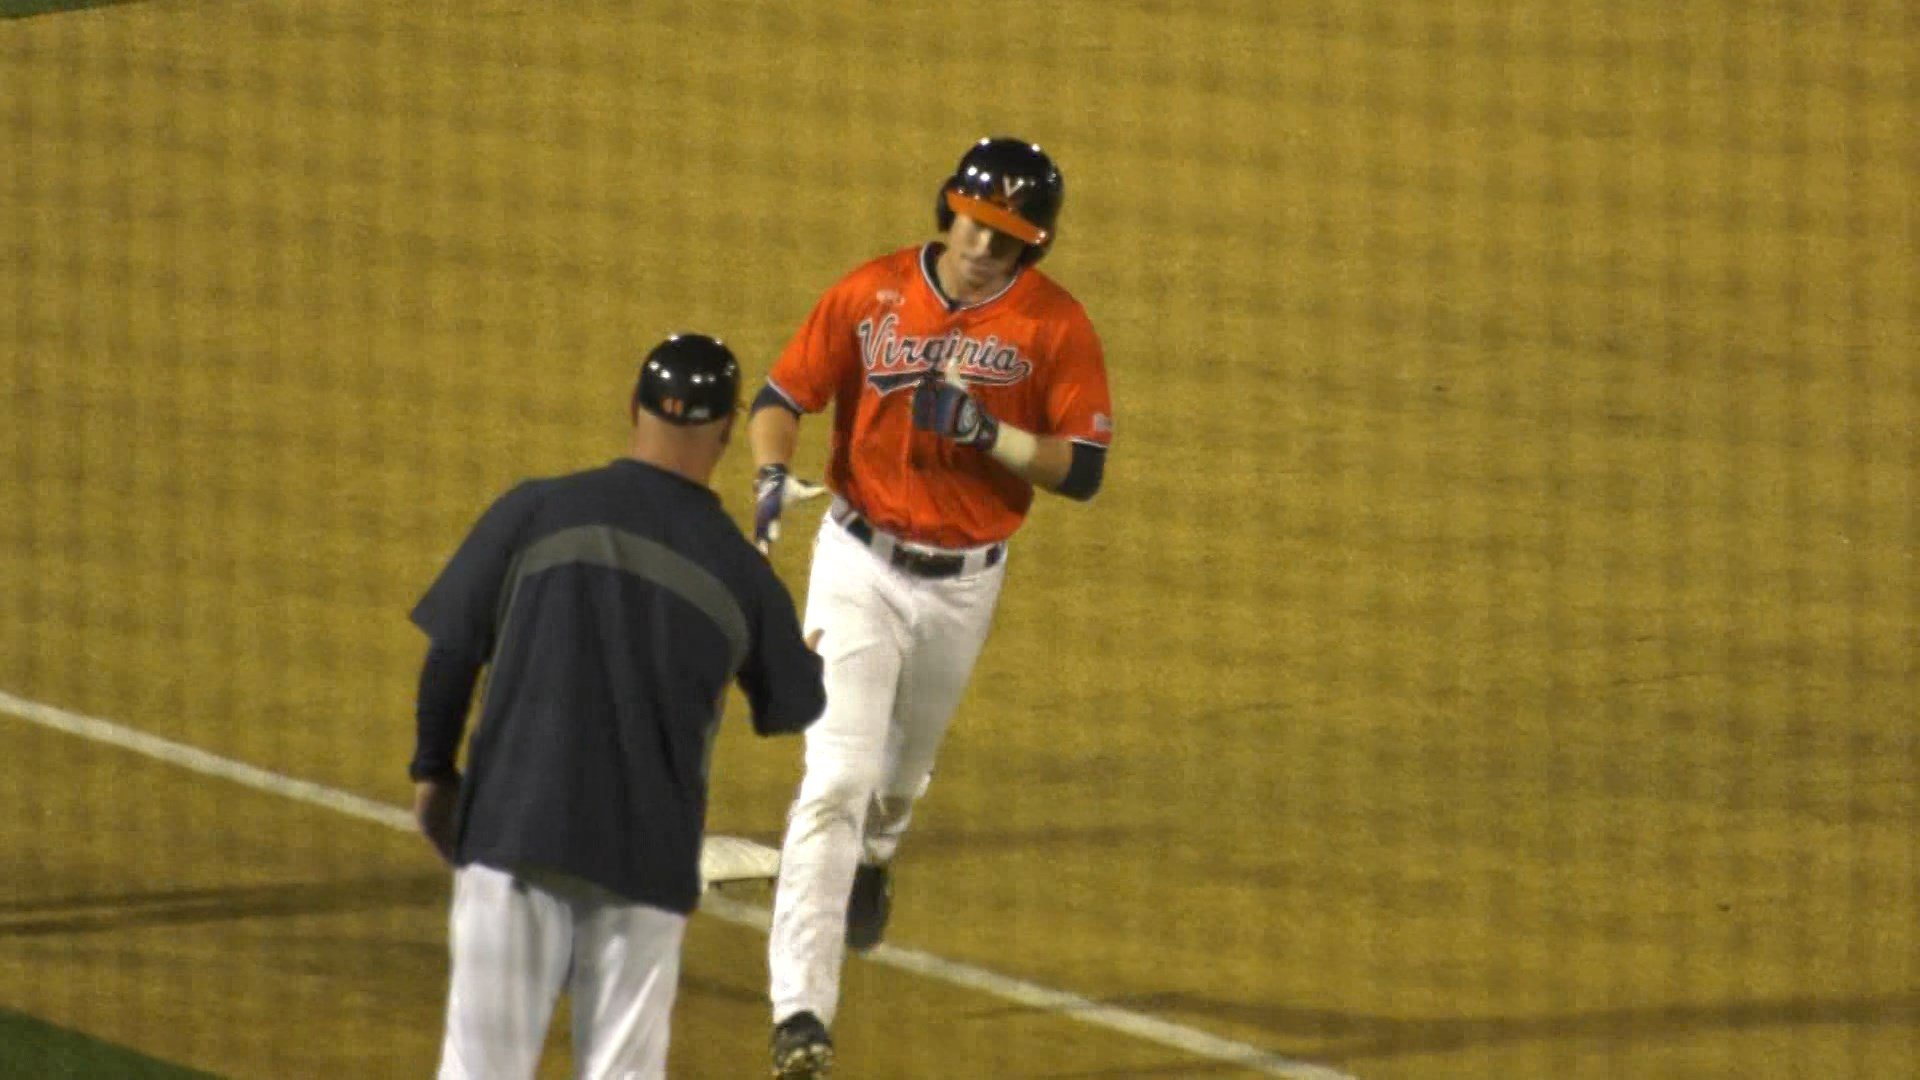 UVa's Jack Weiller hit the first two home runs of his career vs. WF